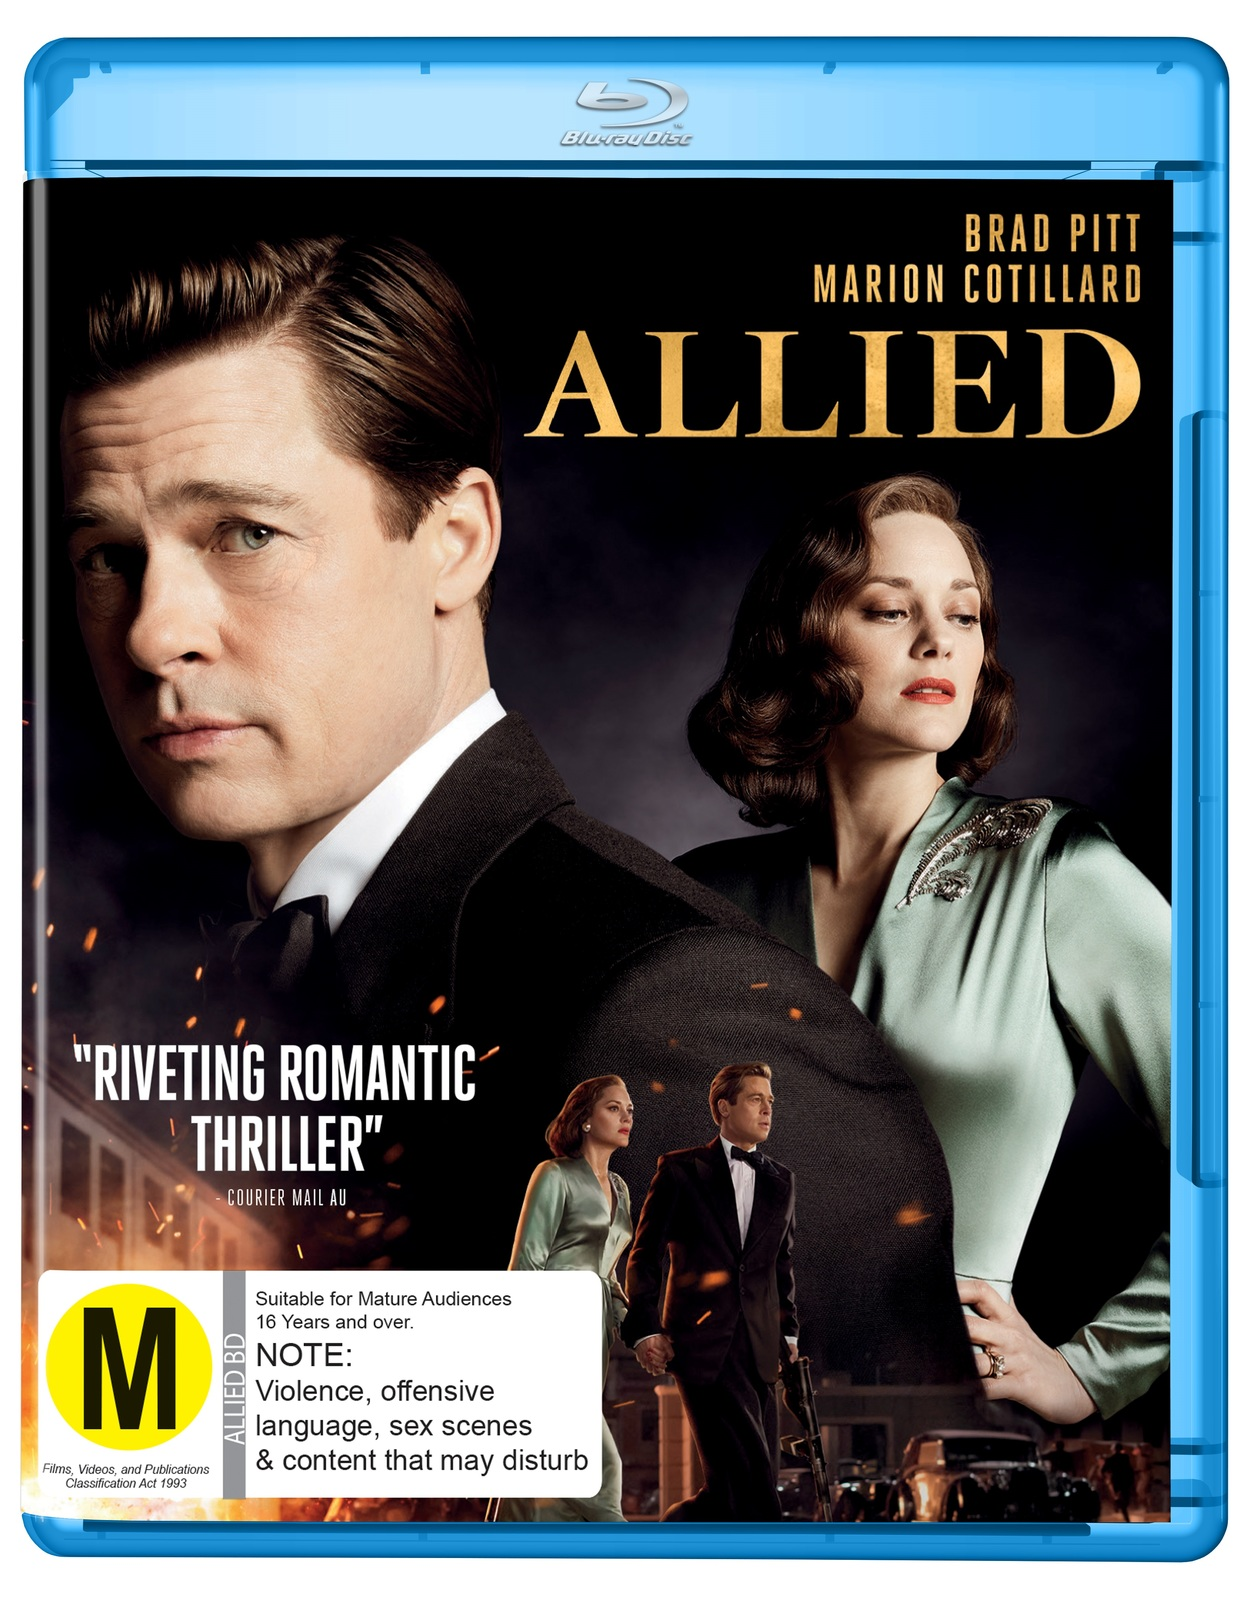 Allied Blu Ray In Stock Buy Now At Mighty Ape Nz